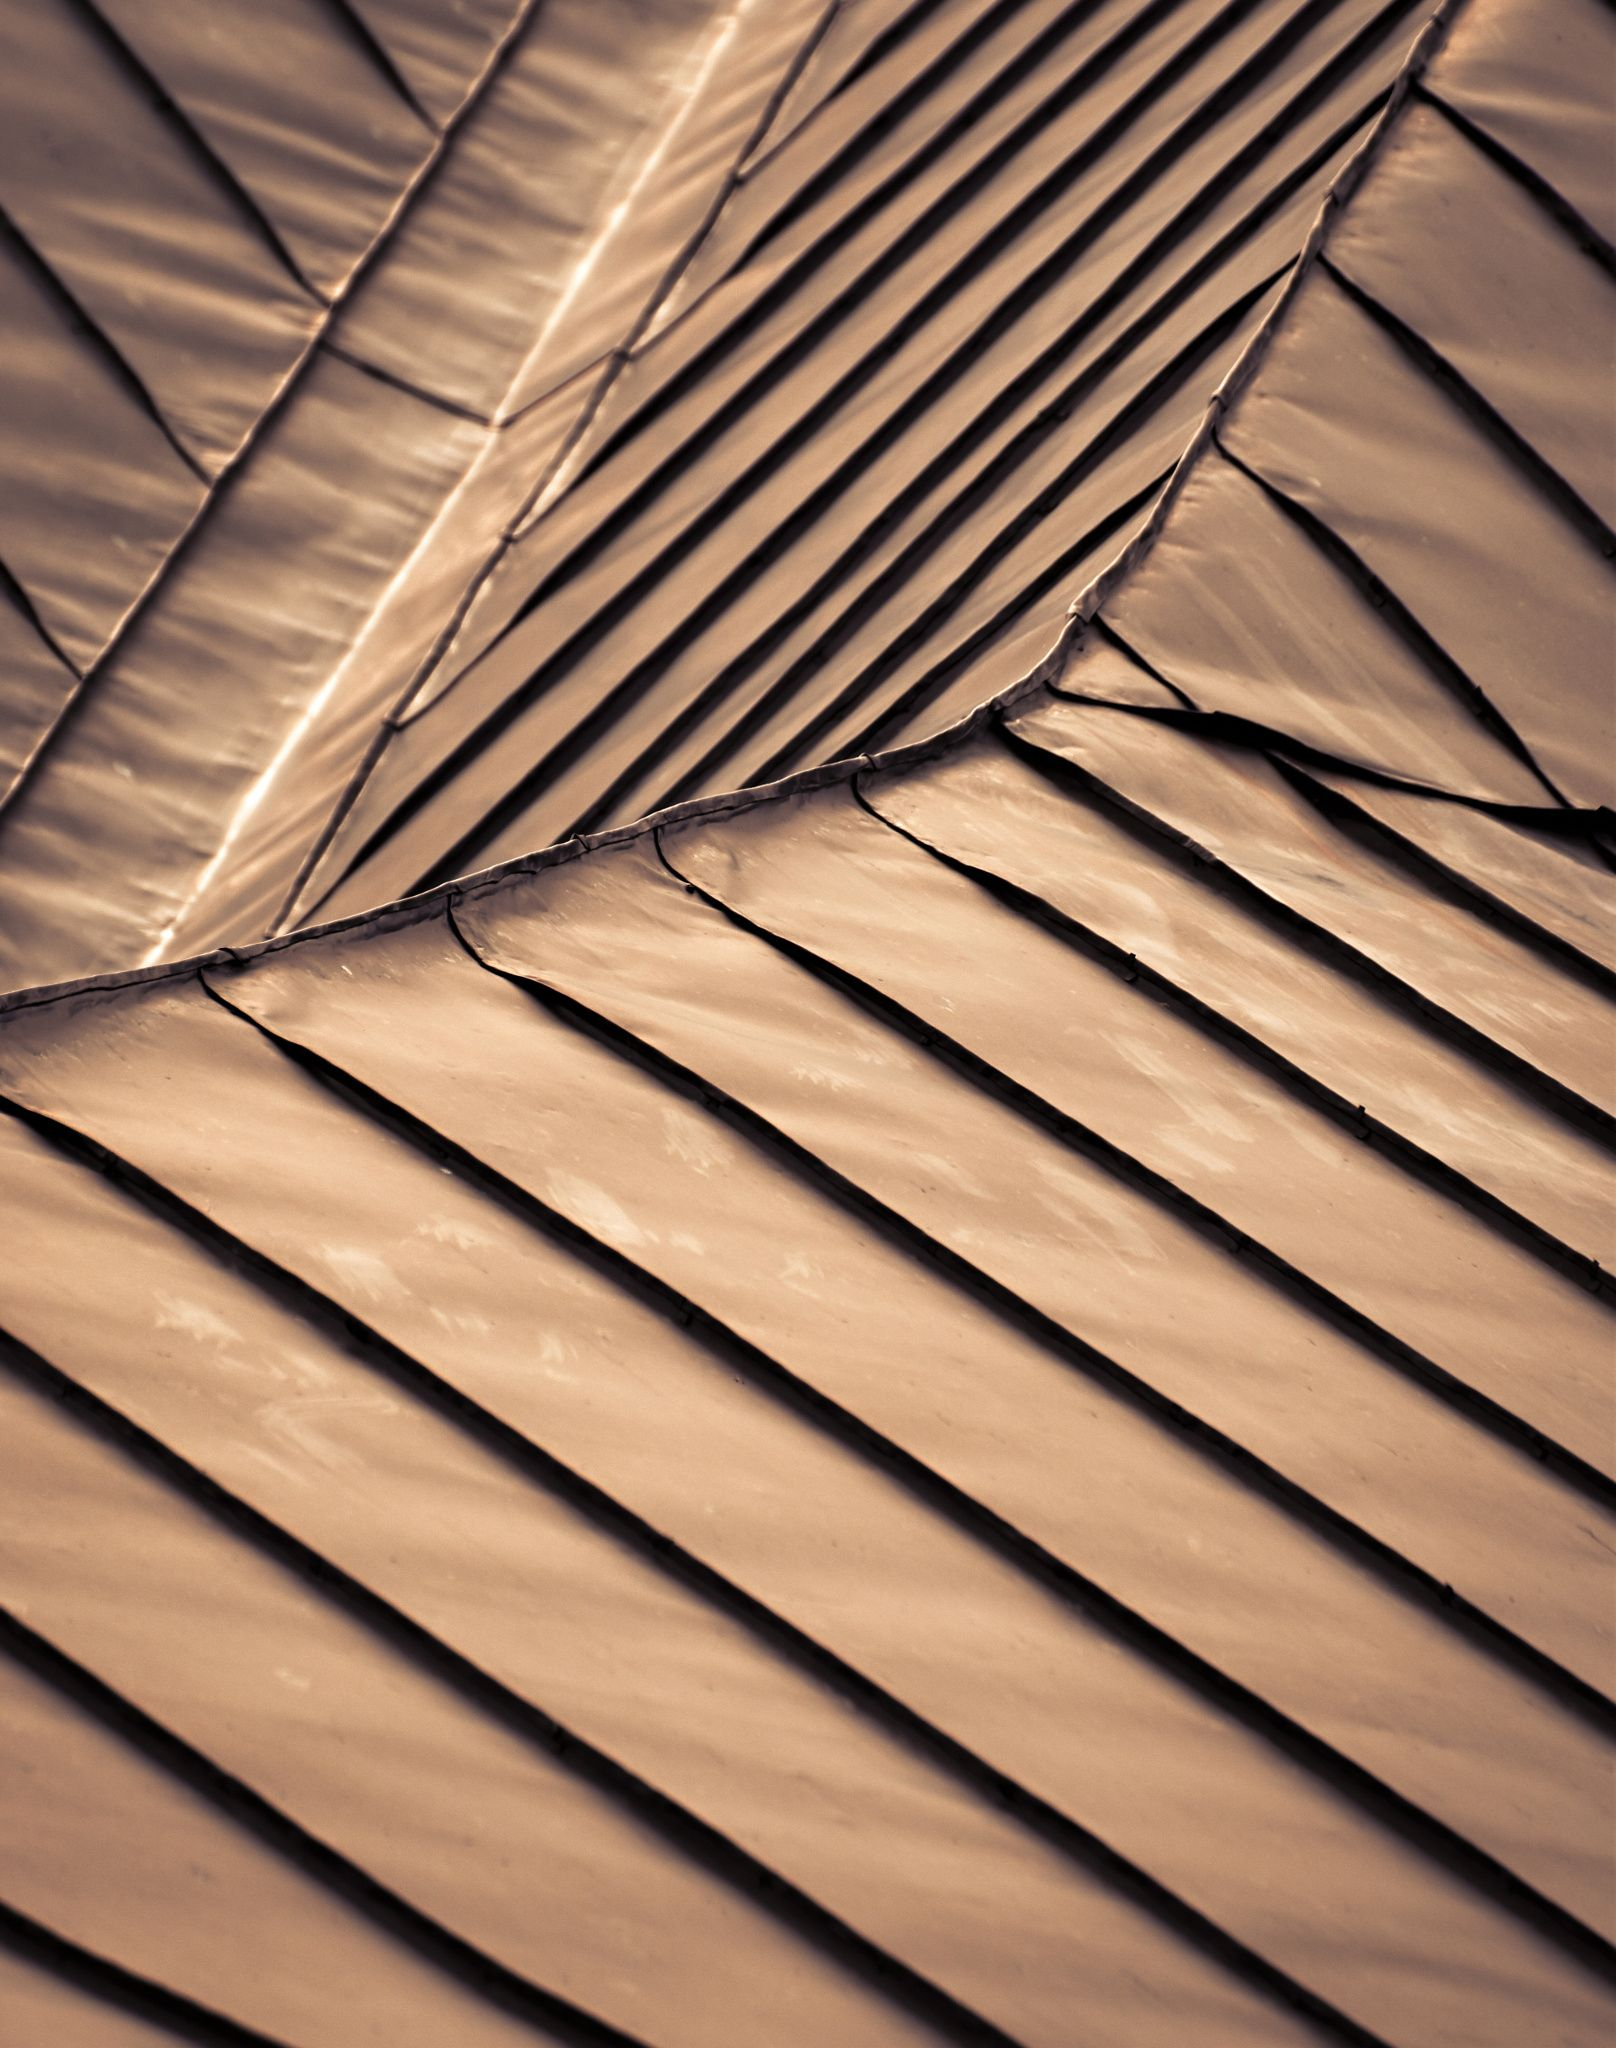 Detail Steel Roof Metal Roof Corrugated Roofing Roof Architecture